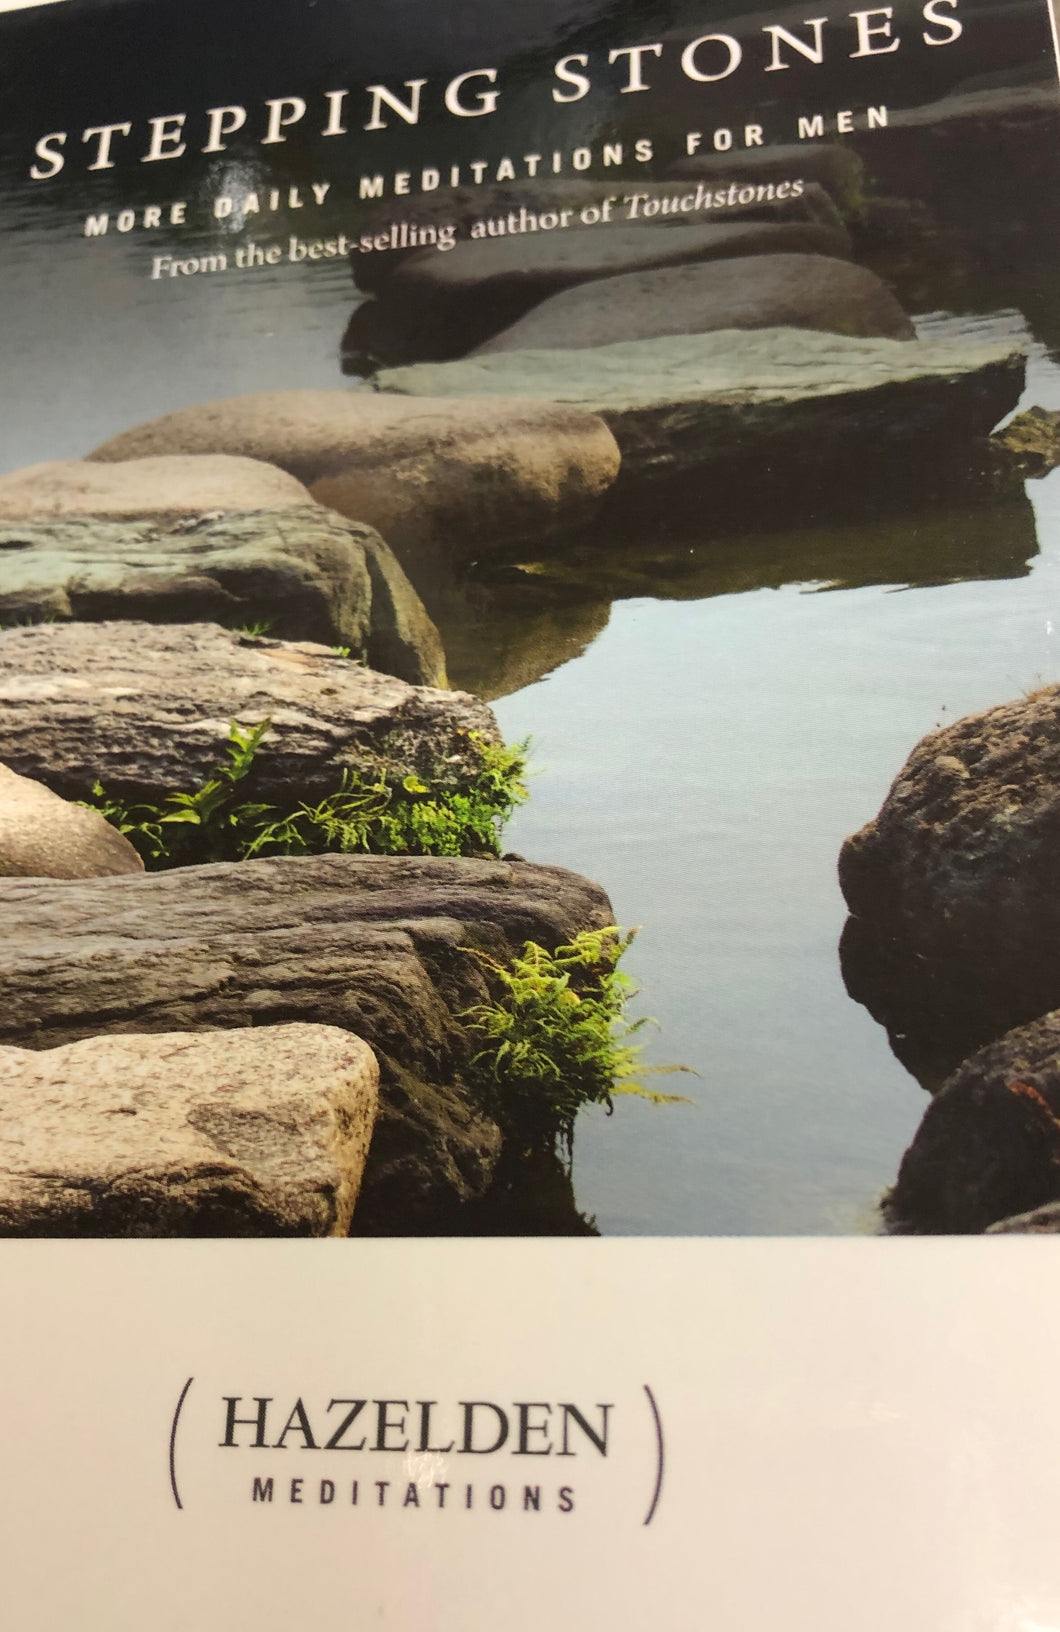 Stepping Stones (More Daily Meditations for Men)